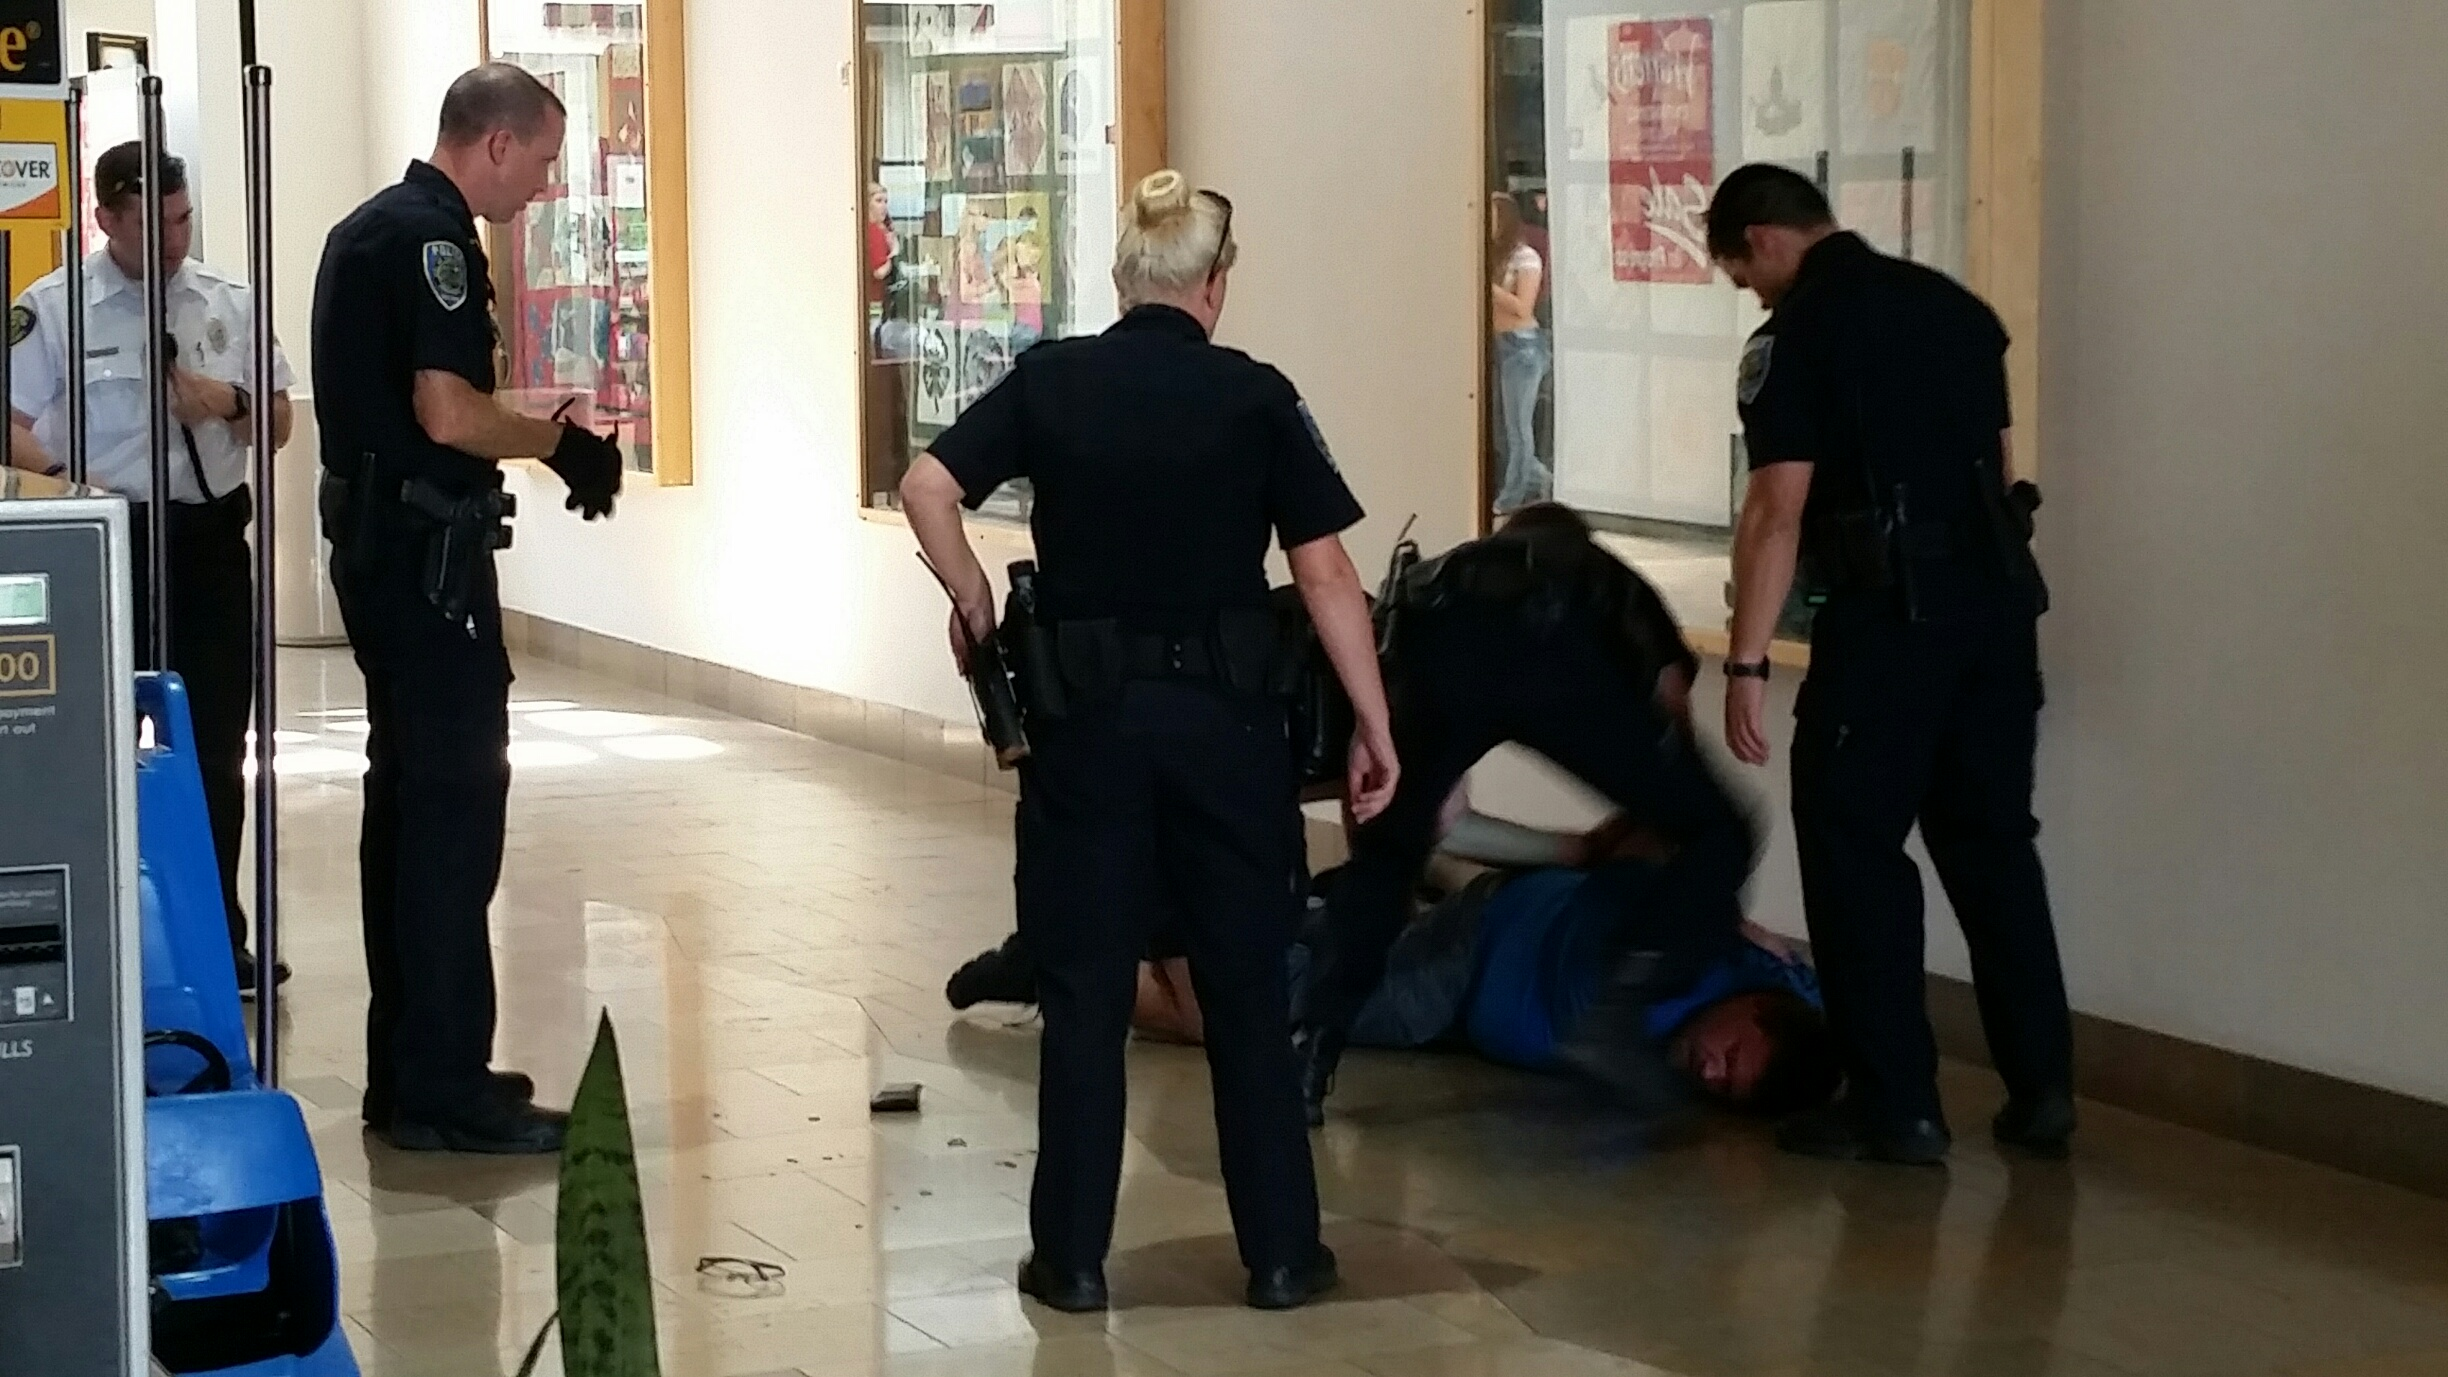 Police arrest one of the suspects at the NWA Mall.